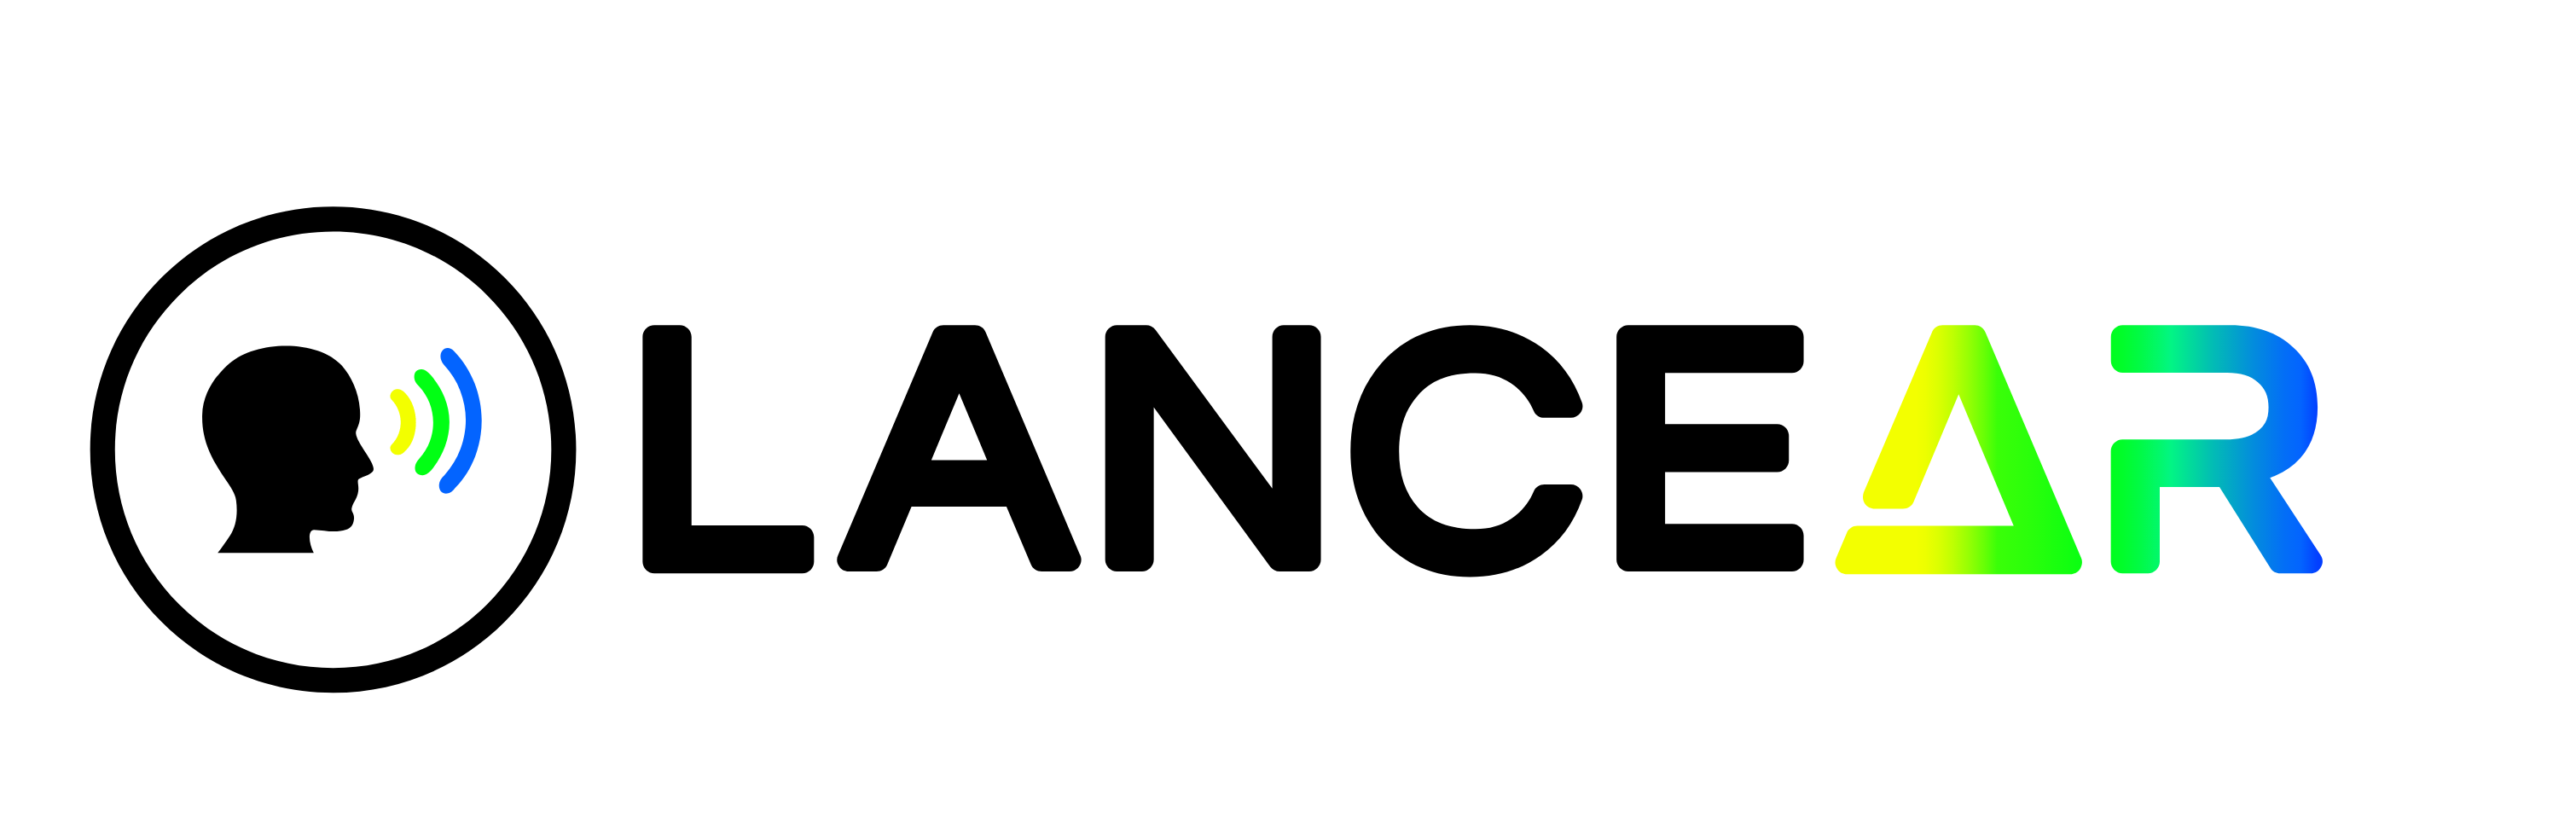 dark_logo_transparent (2)